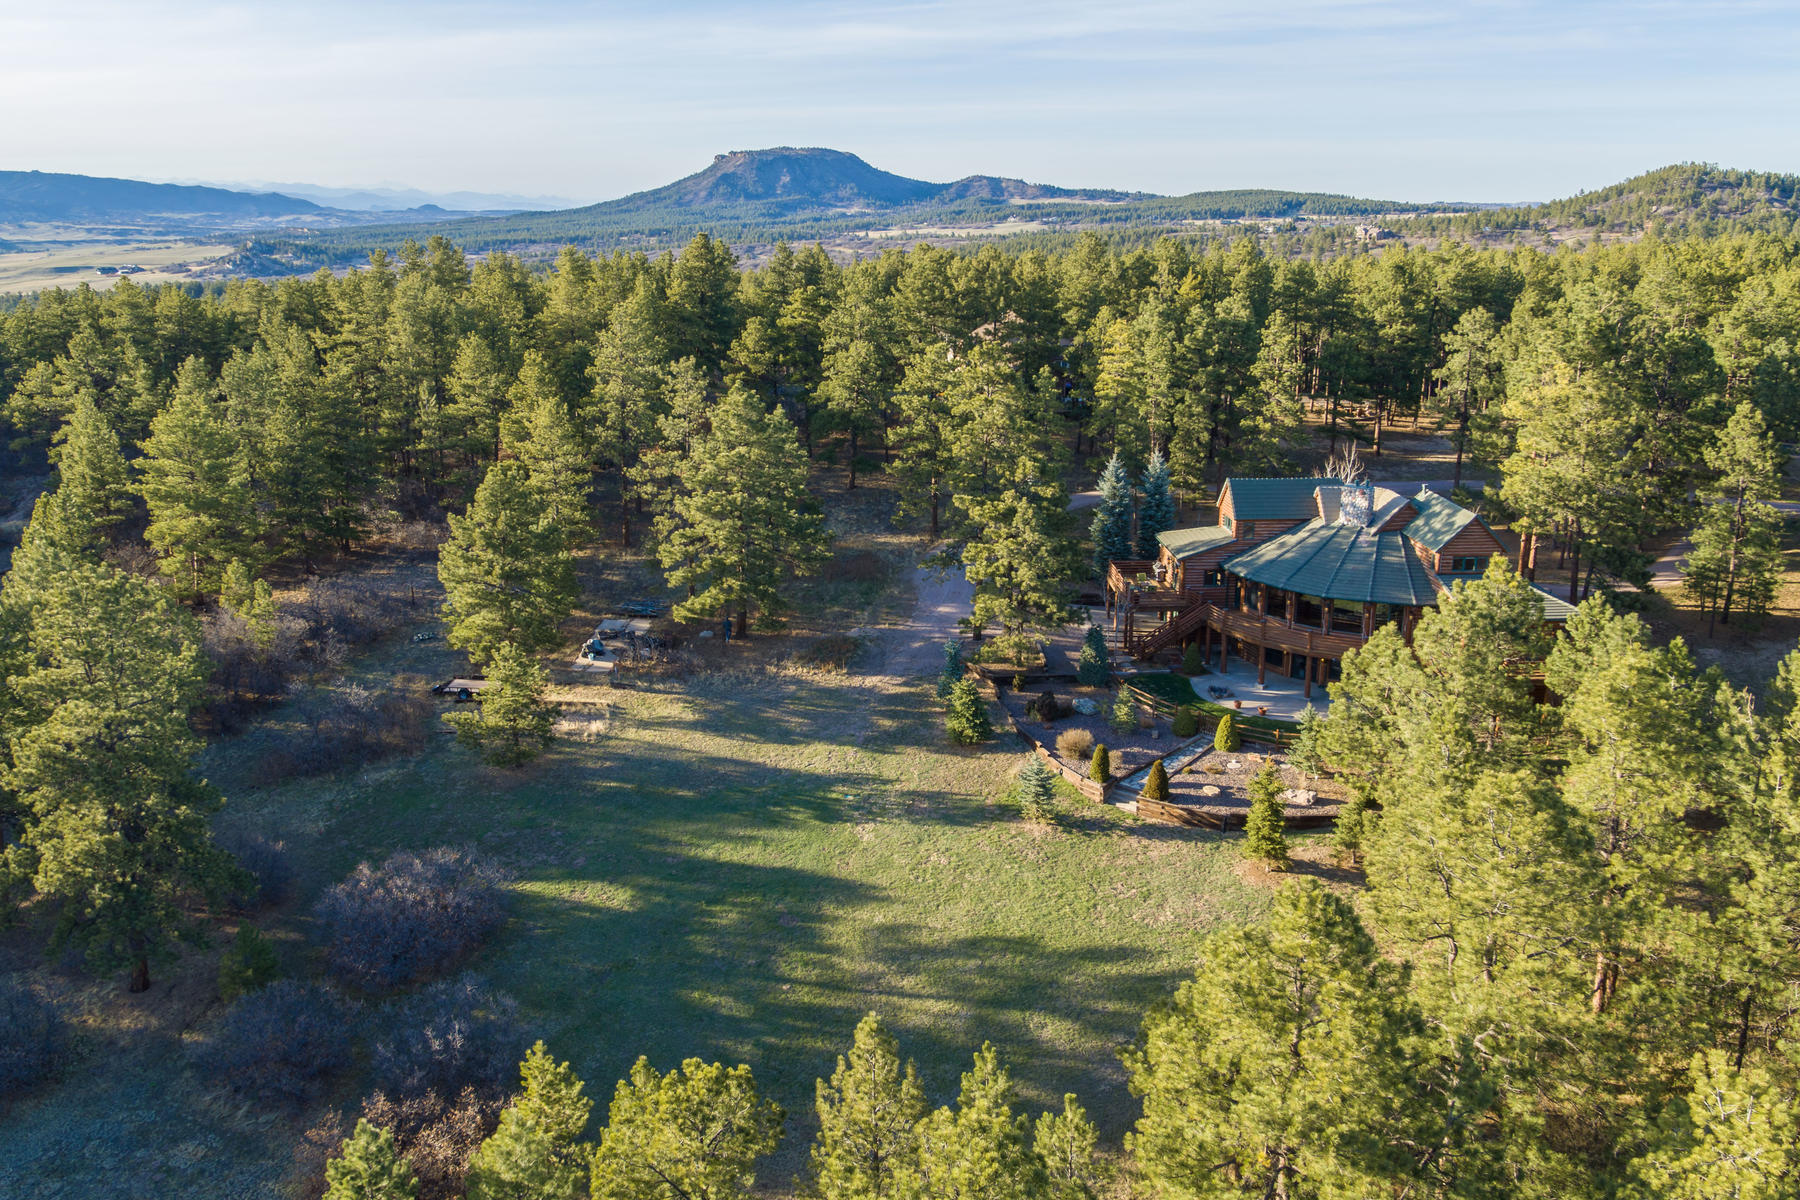 Single Family Home for Active at Luxury Log Home for those who appreciate Colorado's natural setting and beauty. 1960 Poncha Ct Larkspur, Colorado 80118 United States